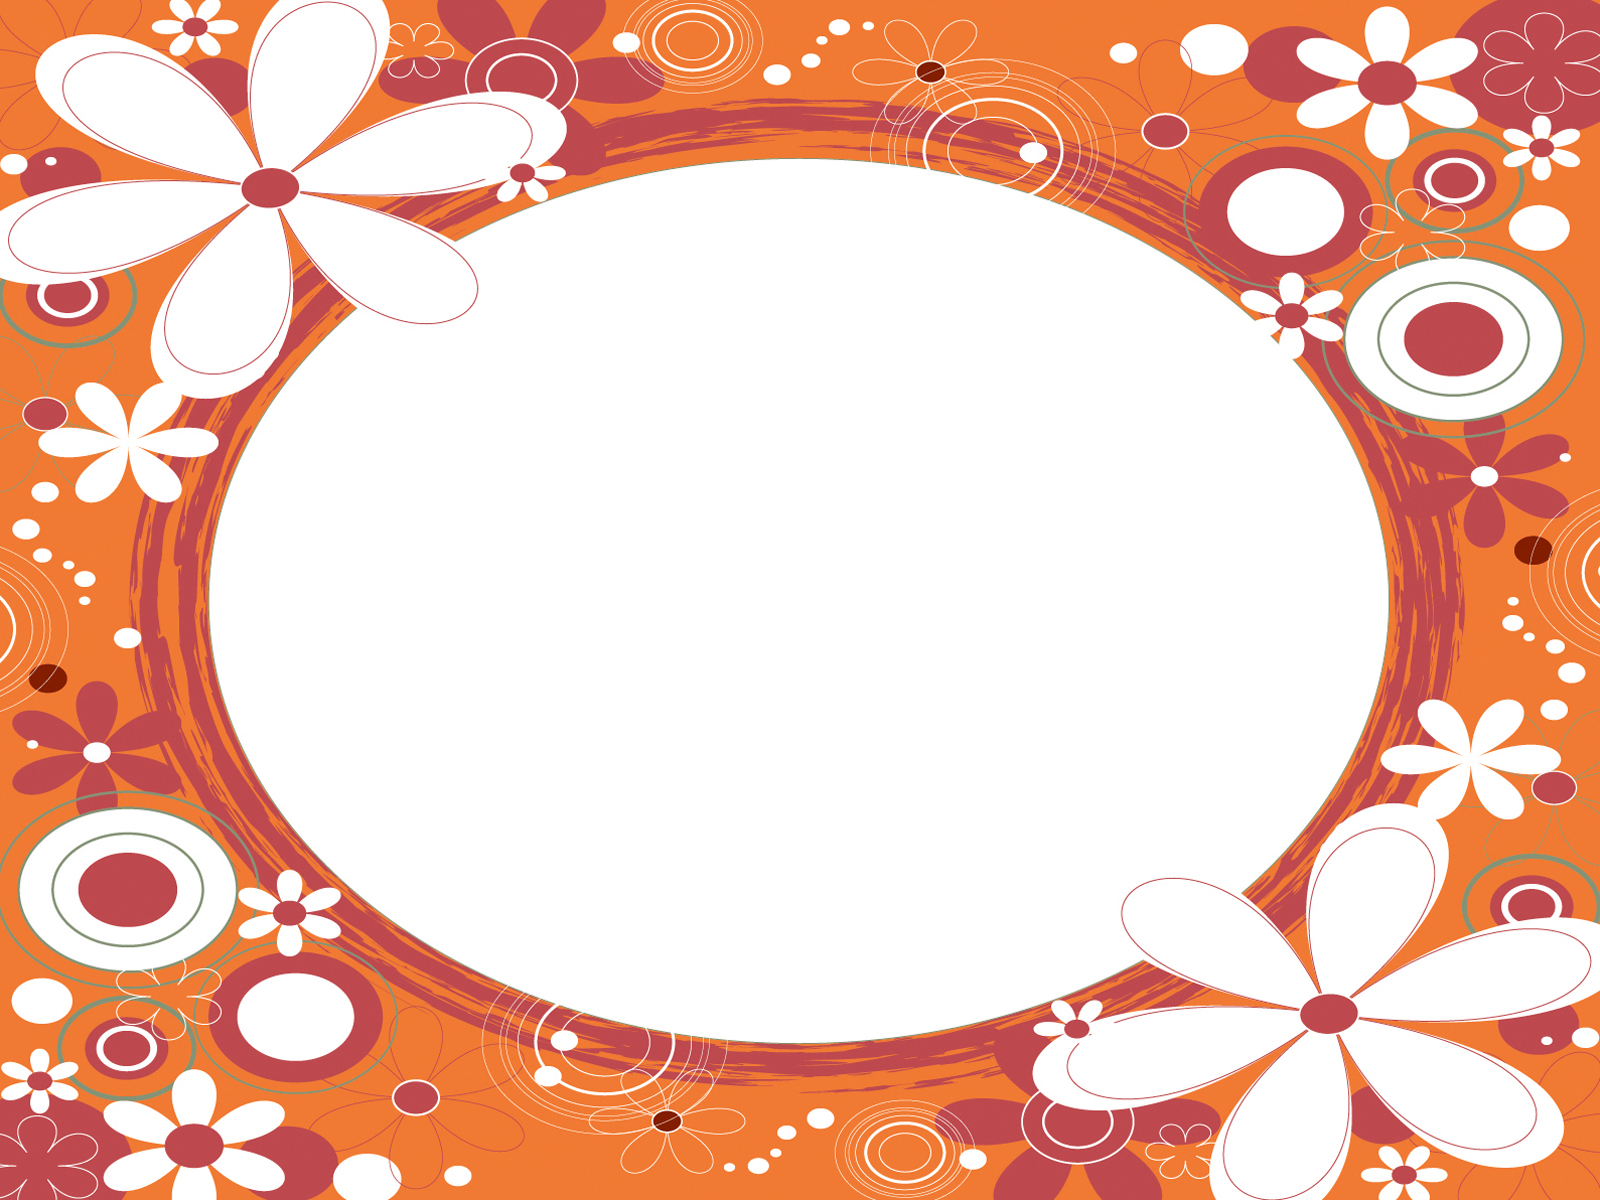 Orange Flower Frames Design